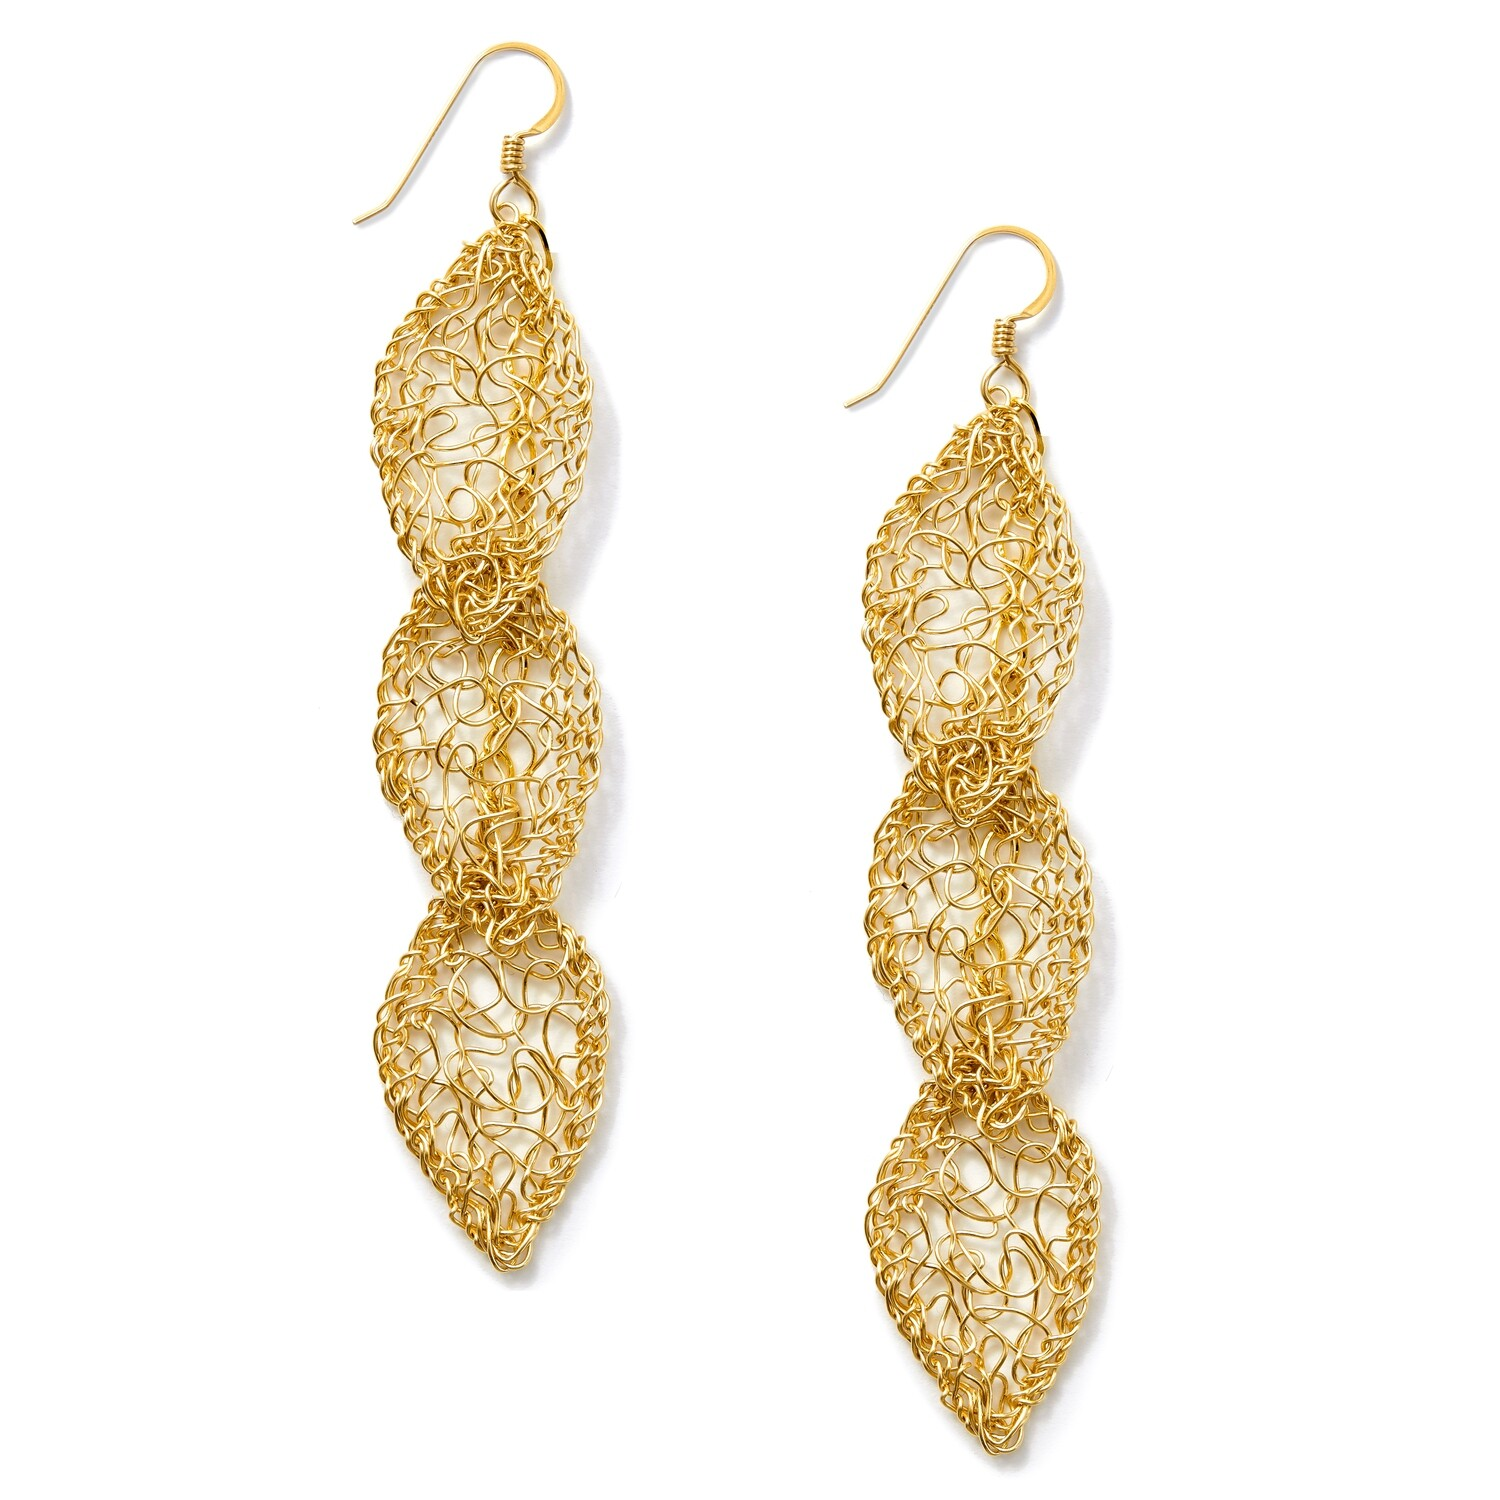 Triple Gold Leaf Dangle Earrings